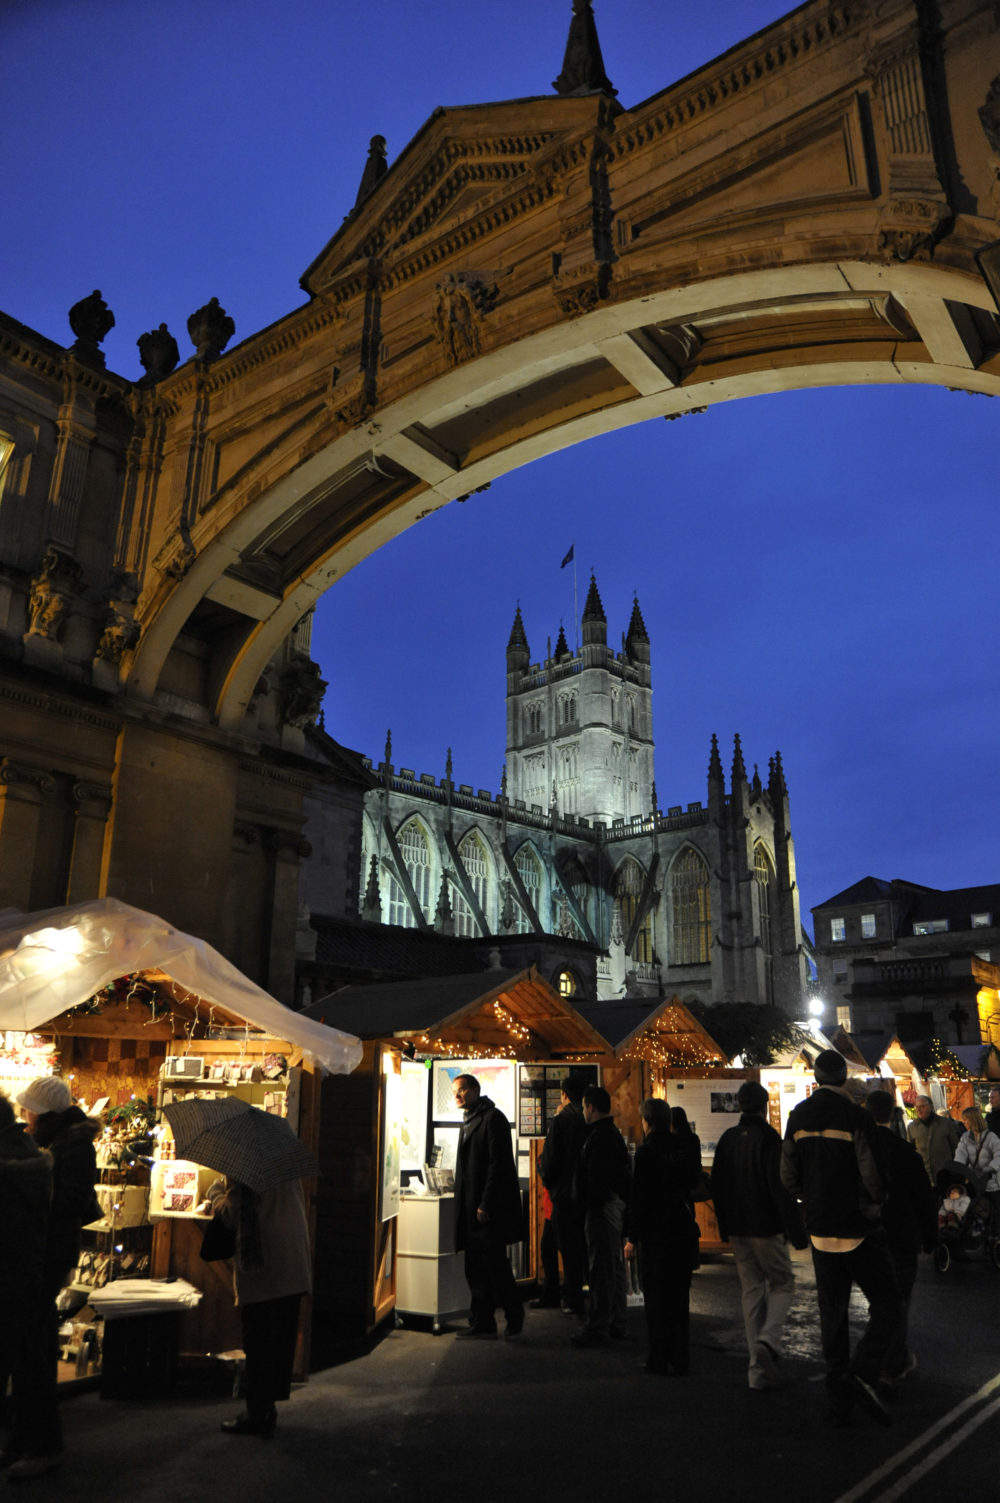 Christmas Market stalls in front of Bath Abbey